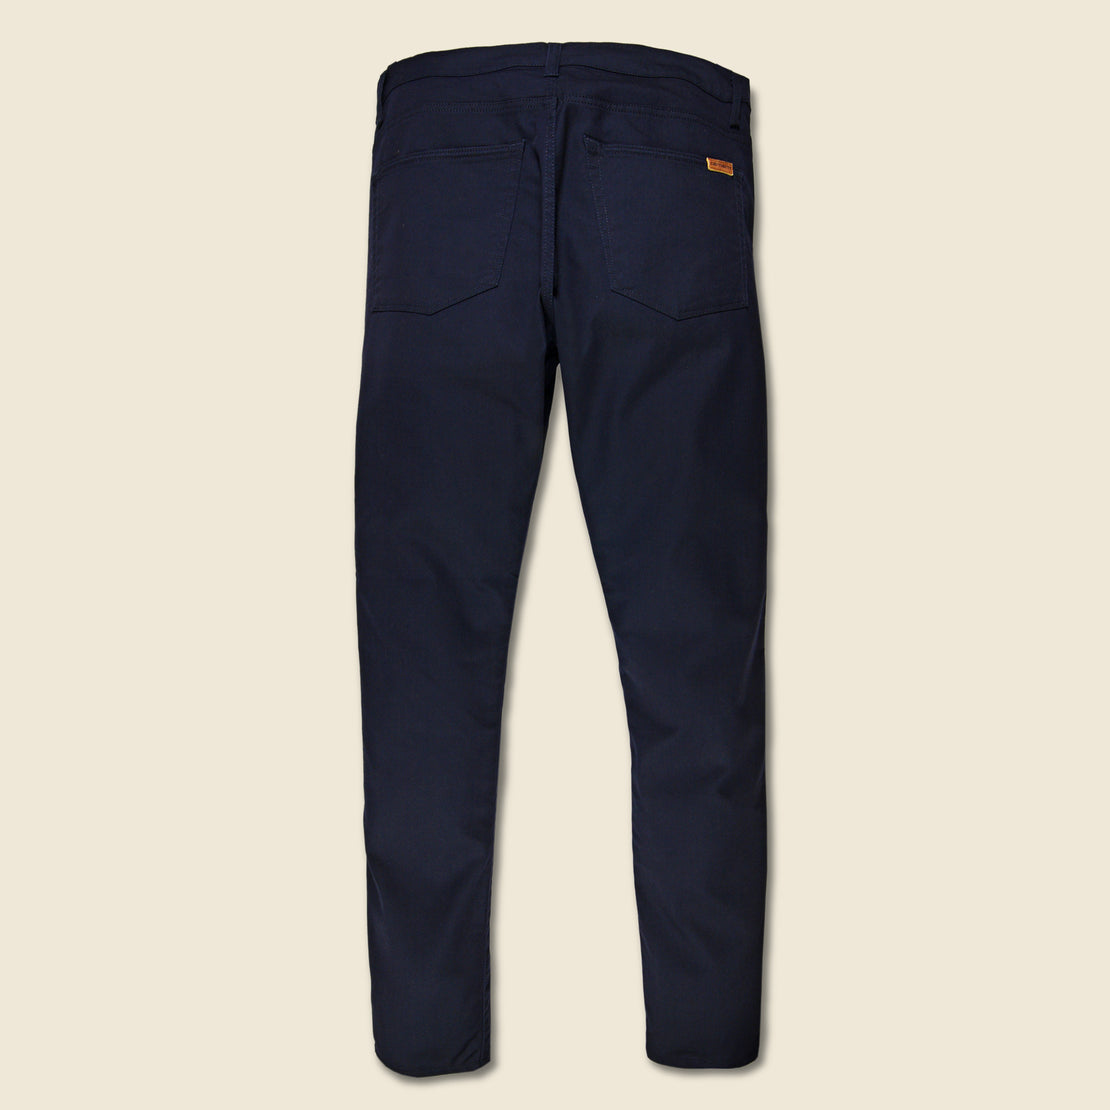 Vicious Pant - Dark Navy